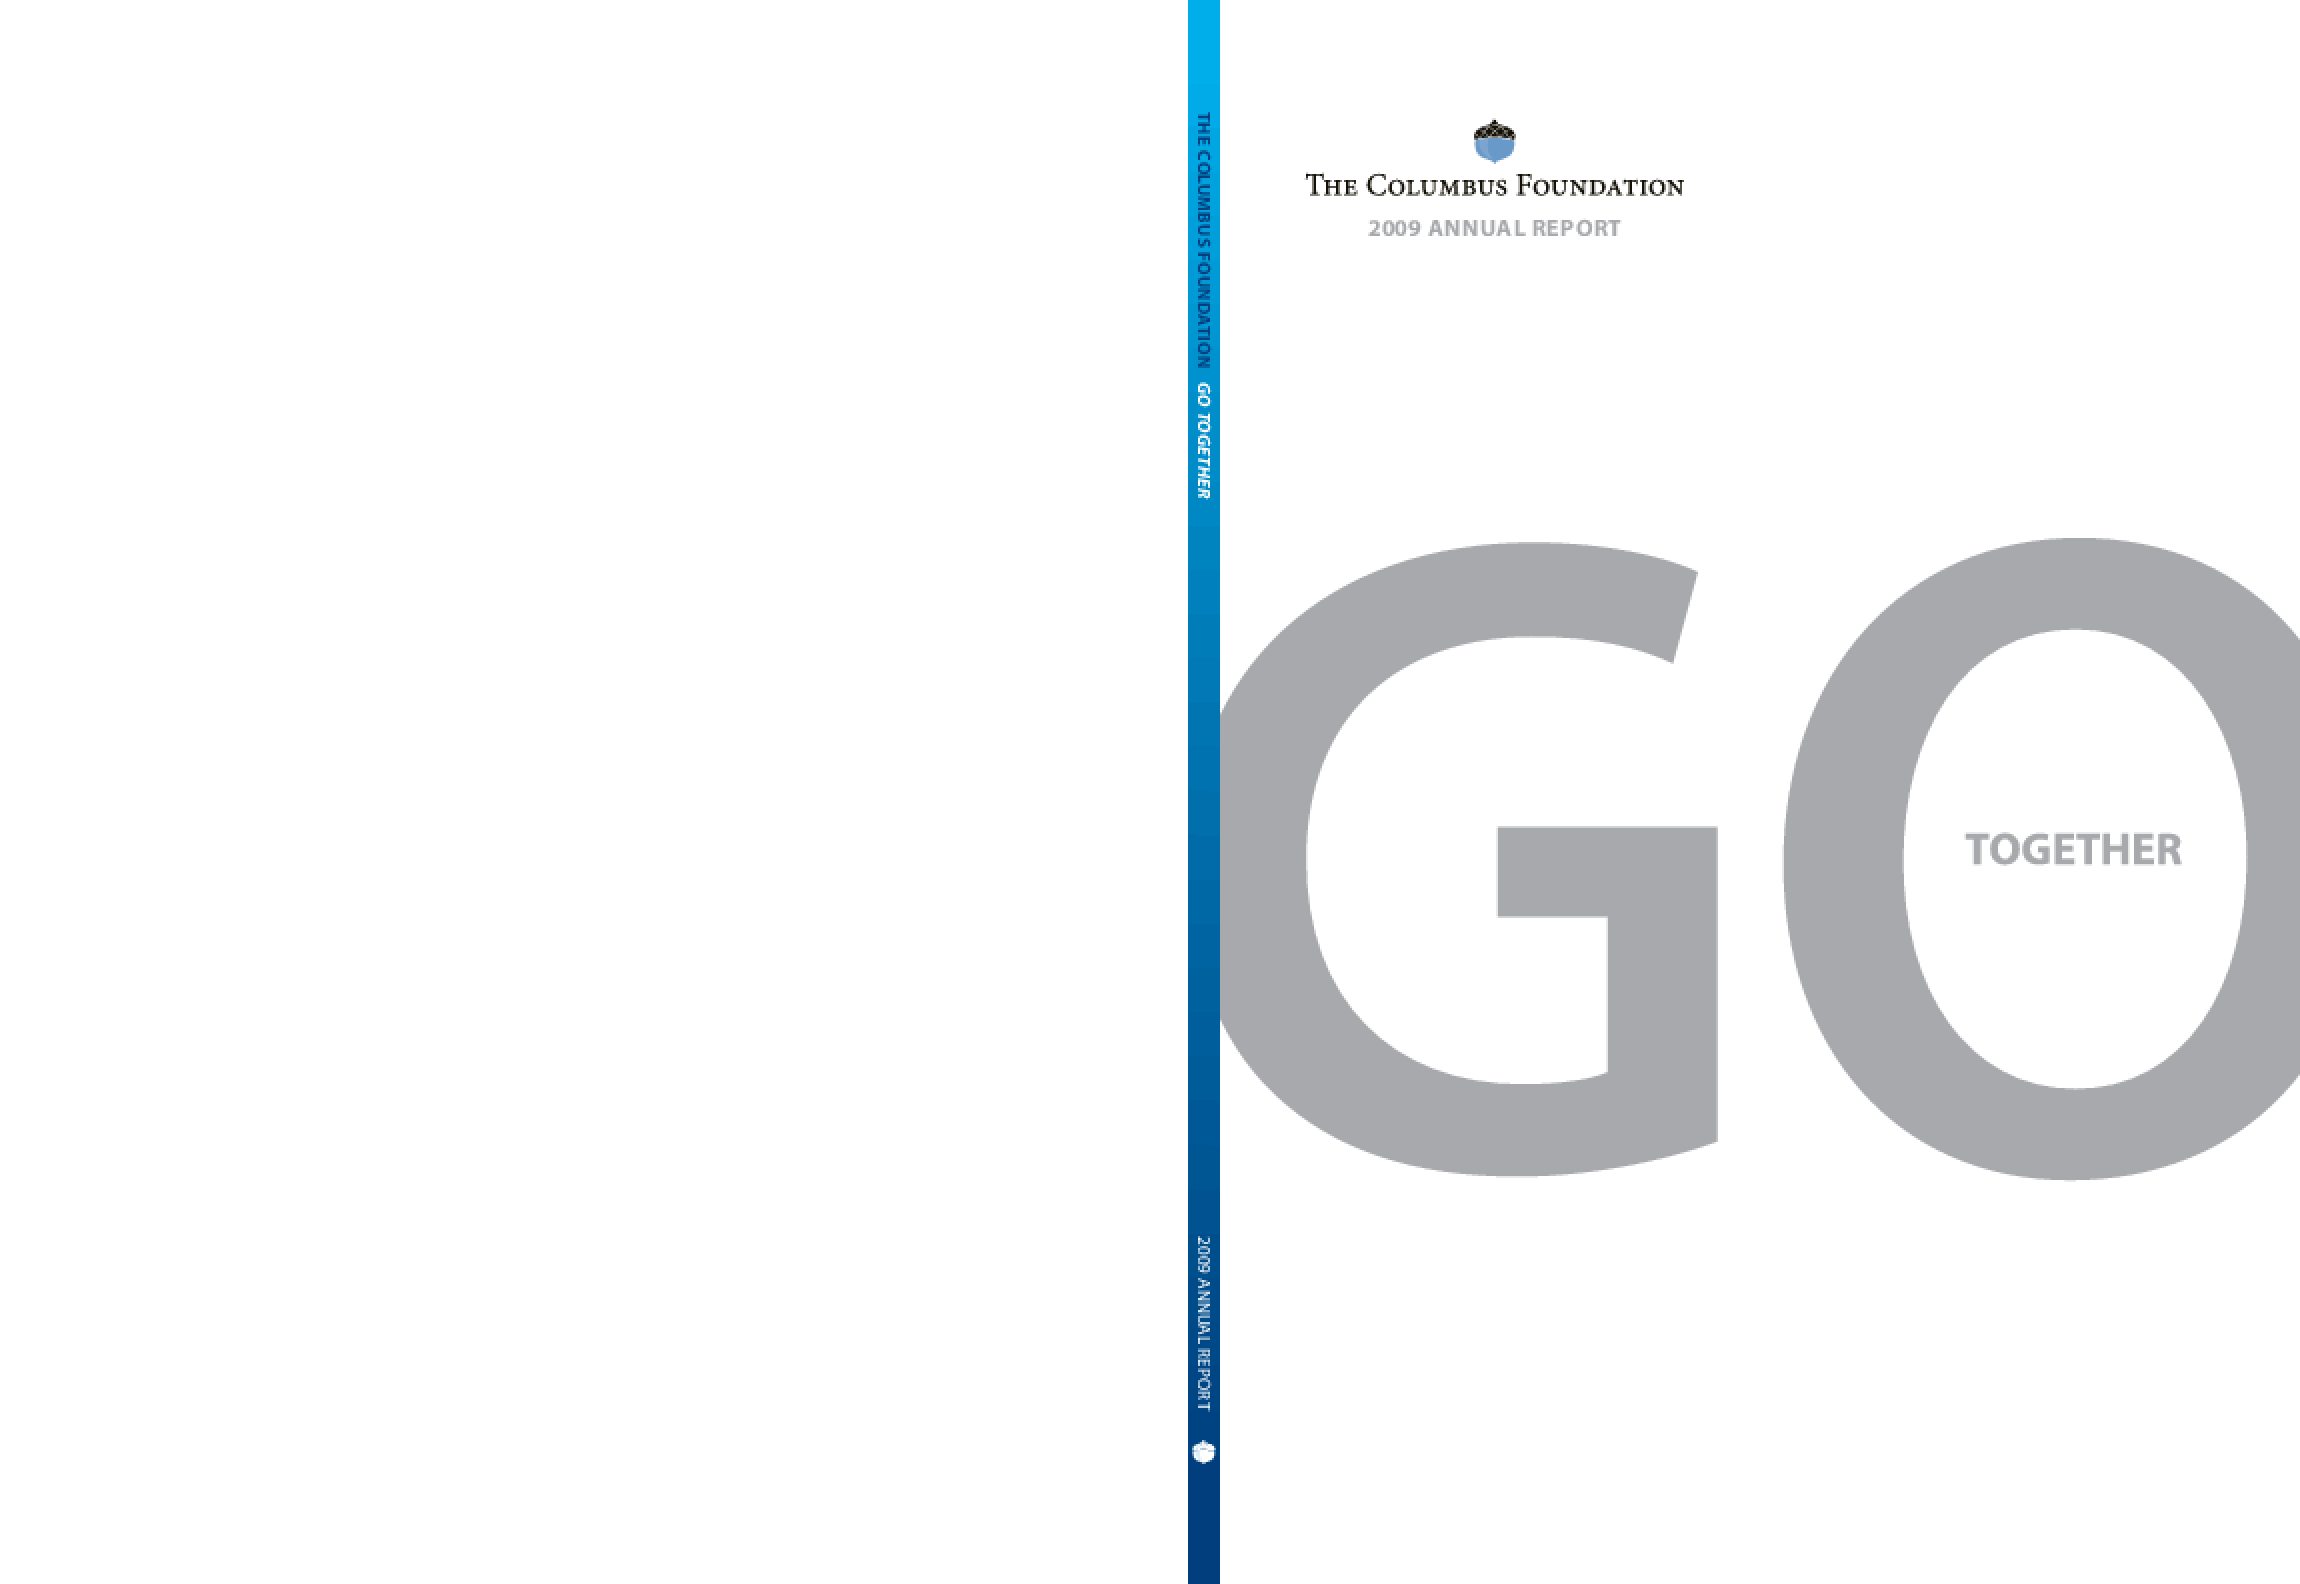 Columbus Foundation - 2009 Annual Report: Go Together